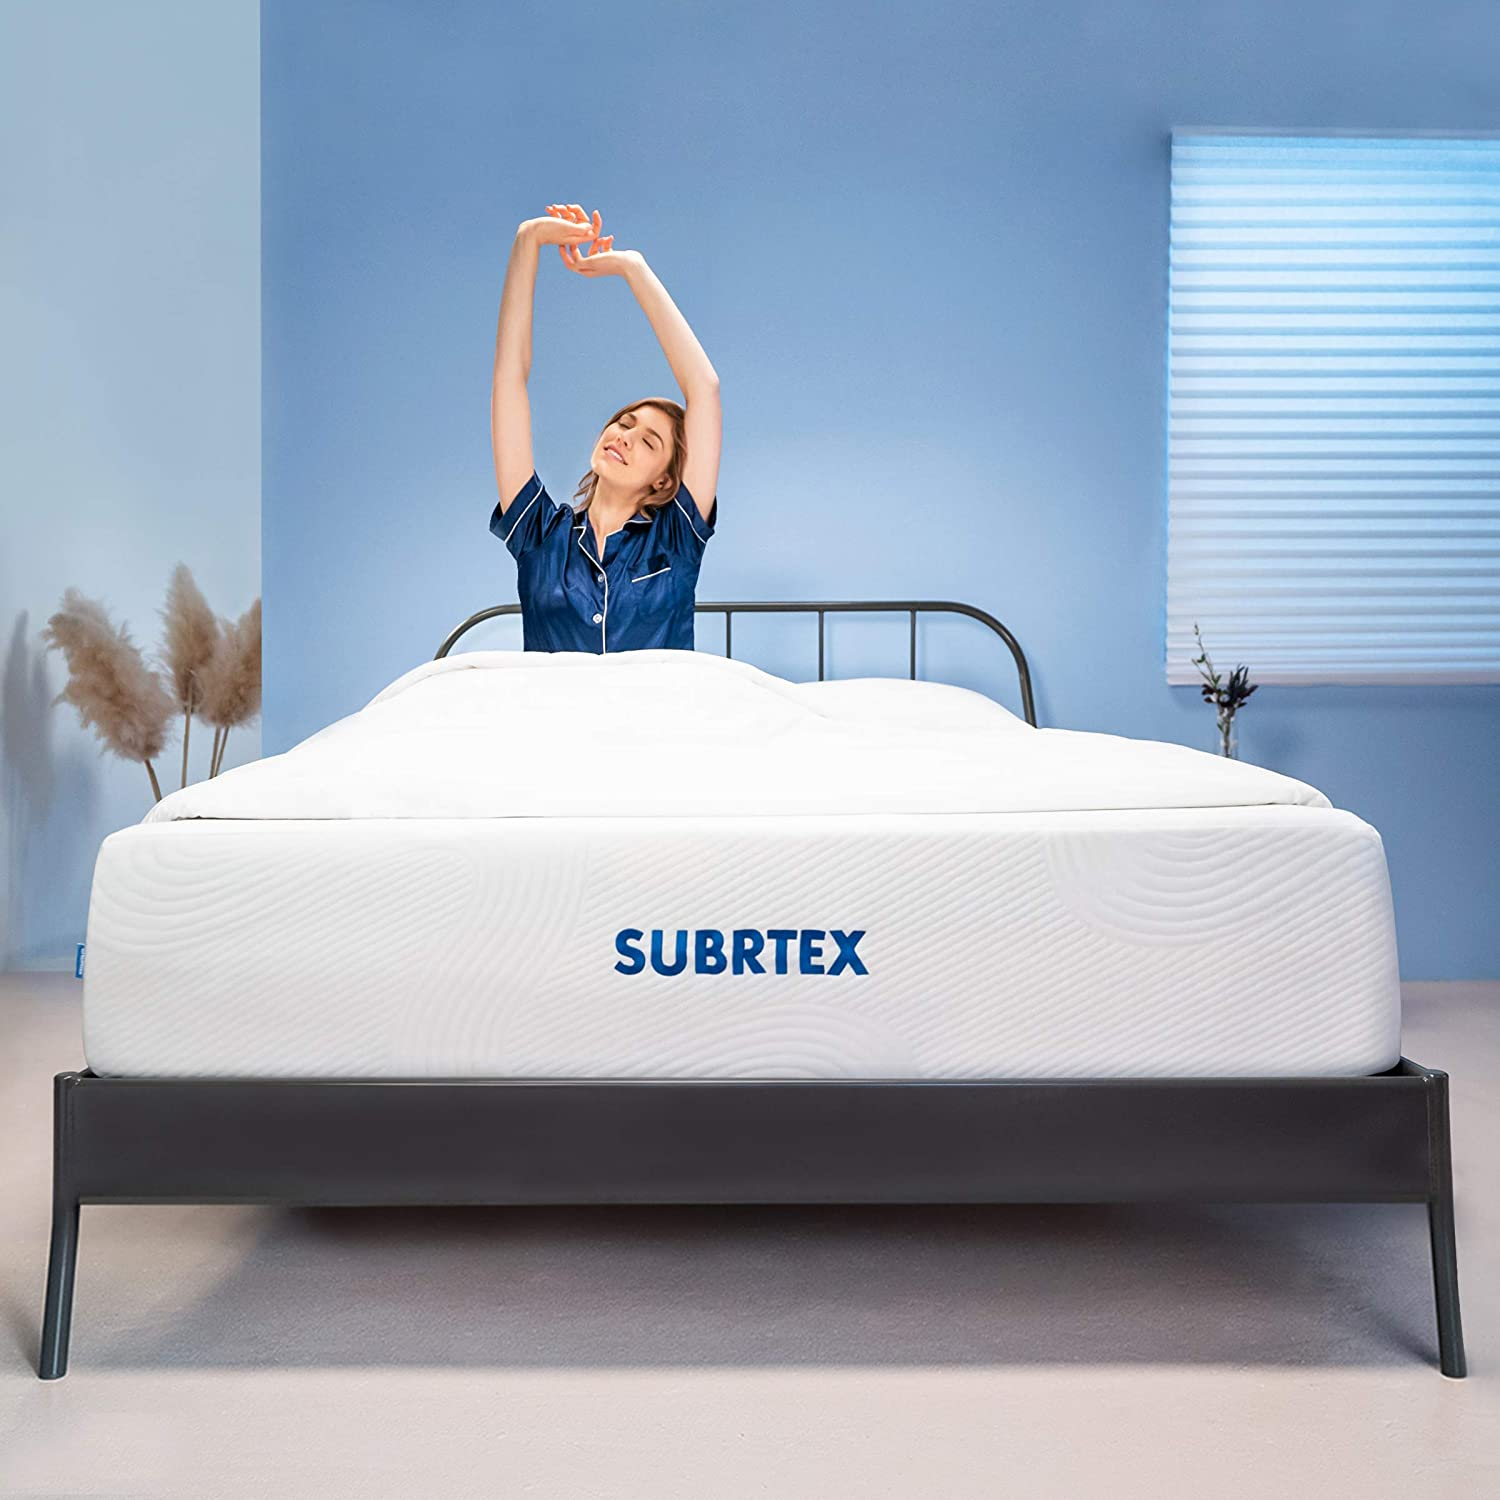 Subrtex 12 Inch Queen Mattress Gel Memory Foam Mattress with Removable Soft Cover Thick Breathable Full Body Support Cooling Mattress Pad CertiPUR-US Bed in A Box (Queen, 12-inch)